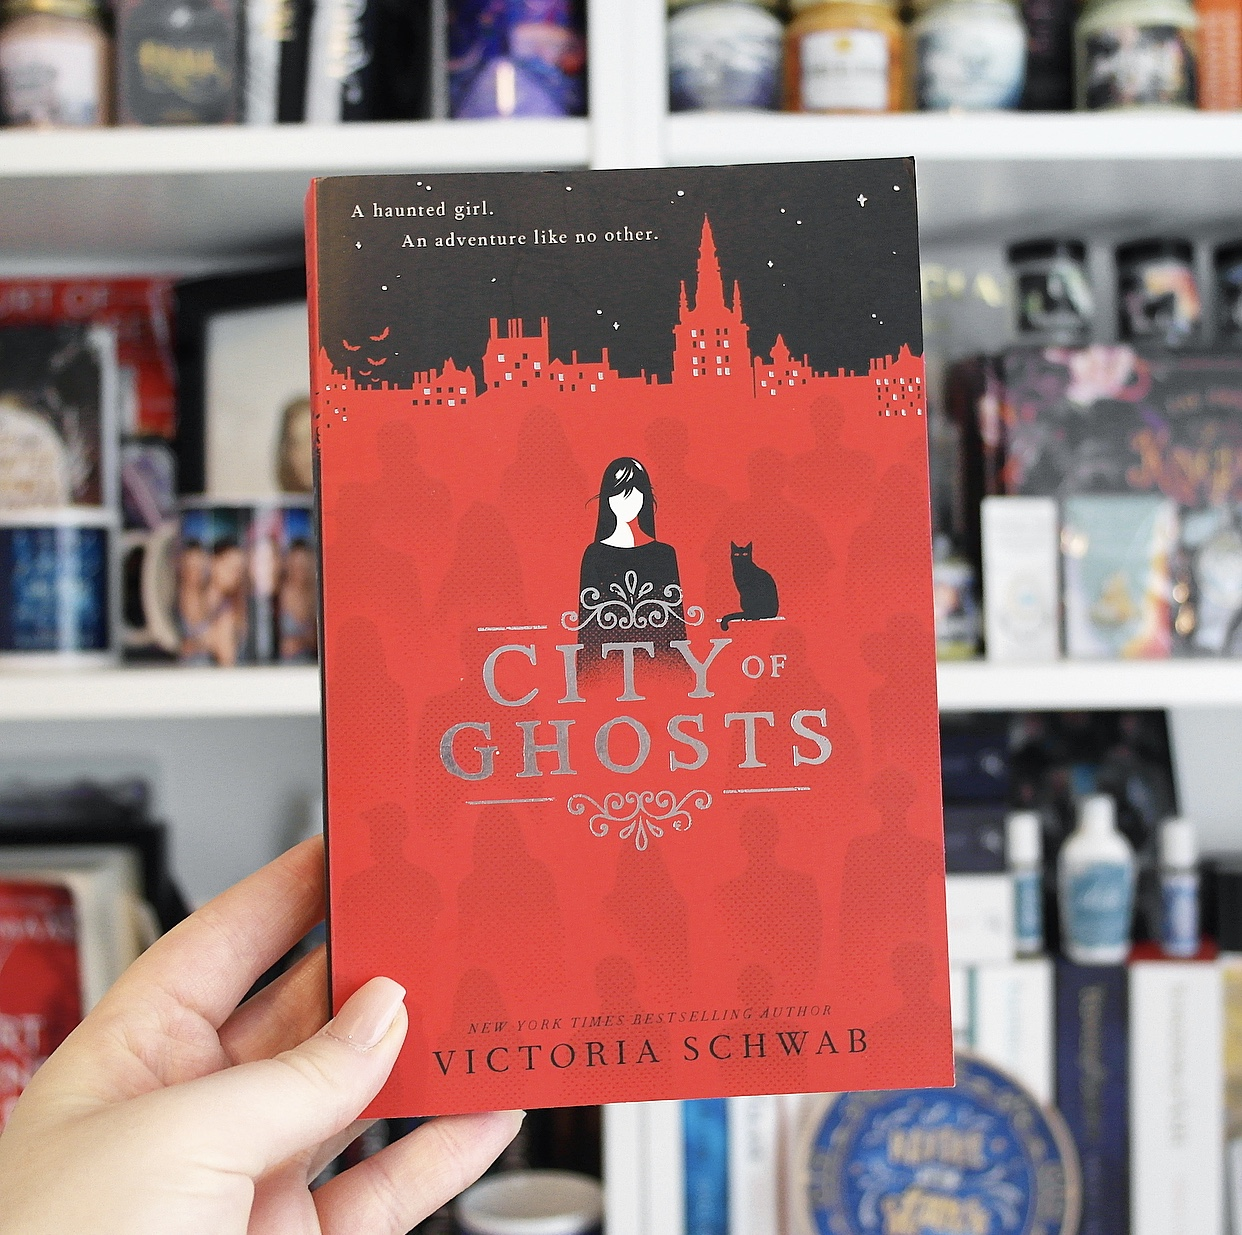 Non-Spoiler Review: City of Ghosts by Victoria Schwab